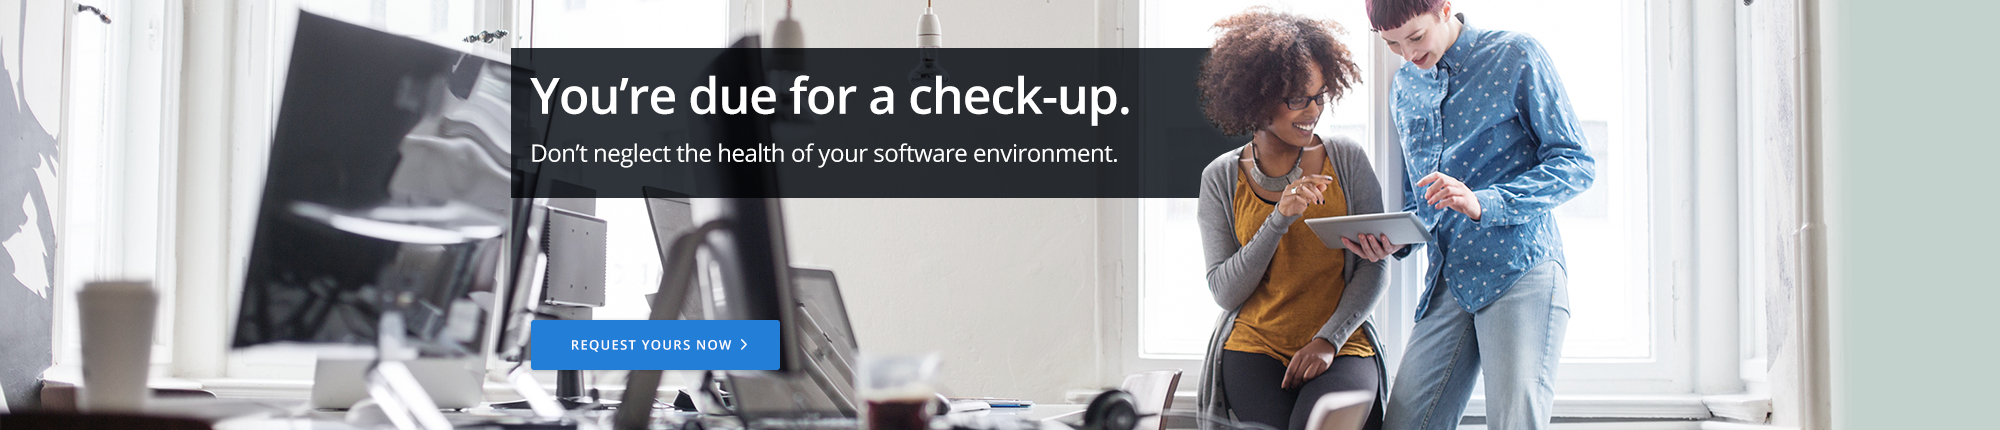 Don't neglect the health of your software environment. Request an Assessment